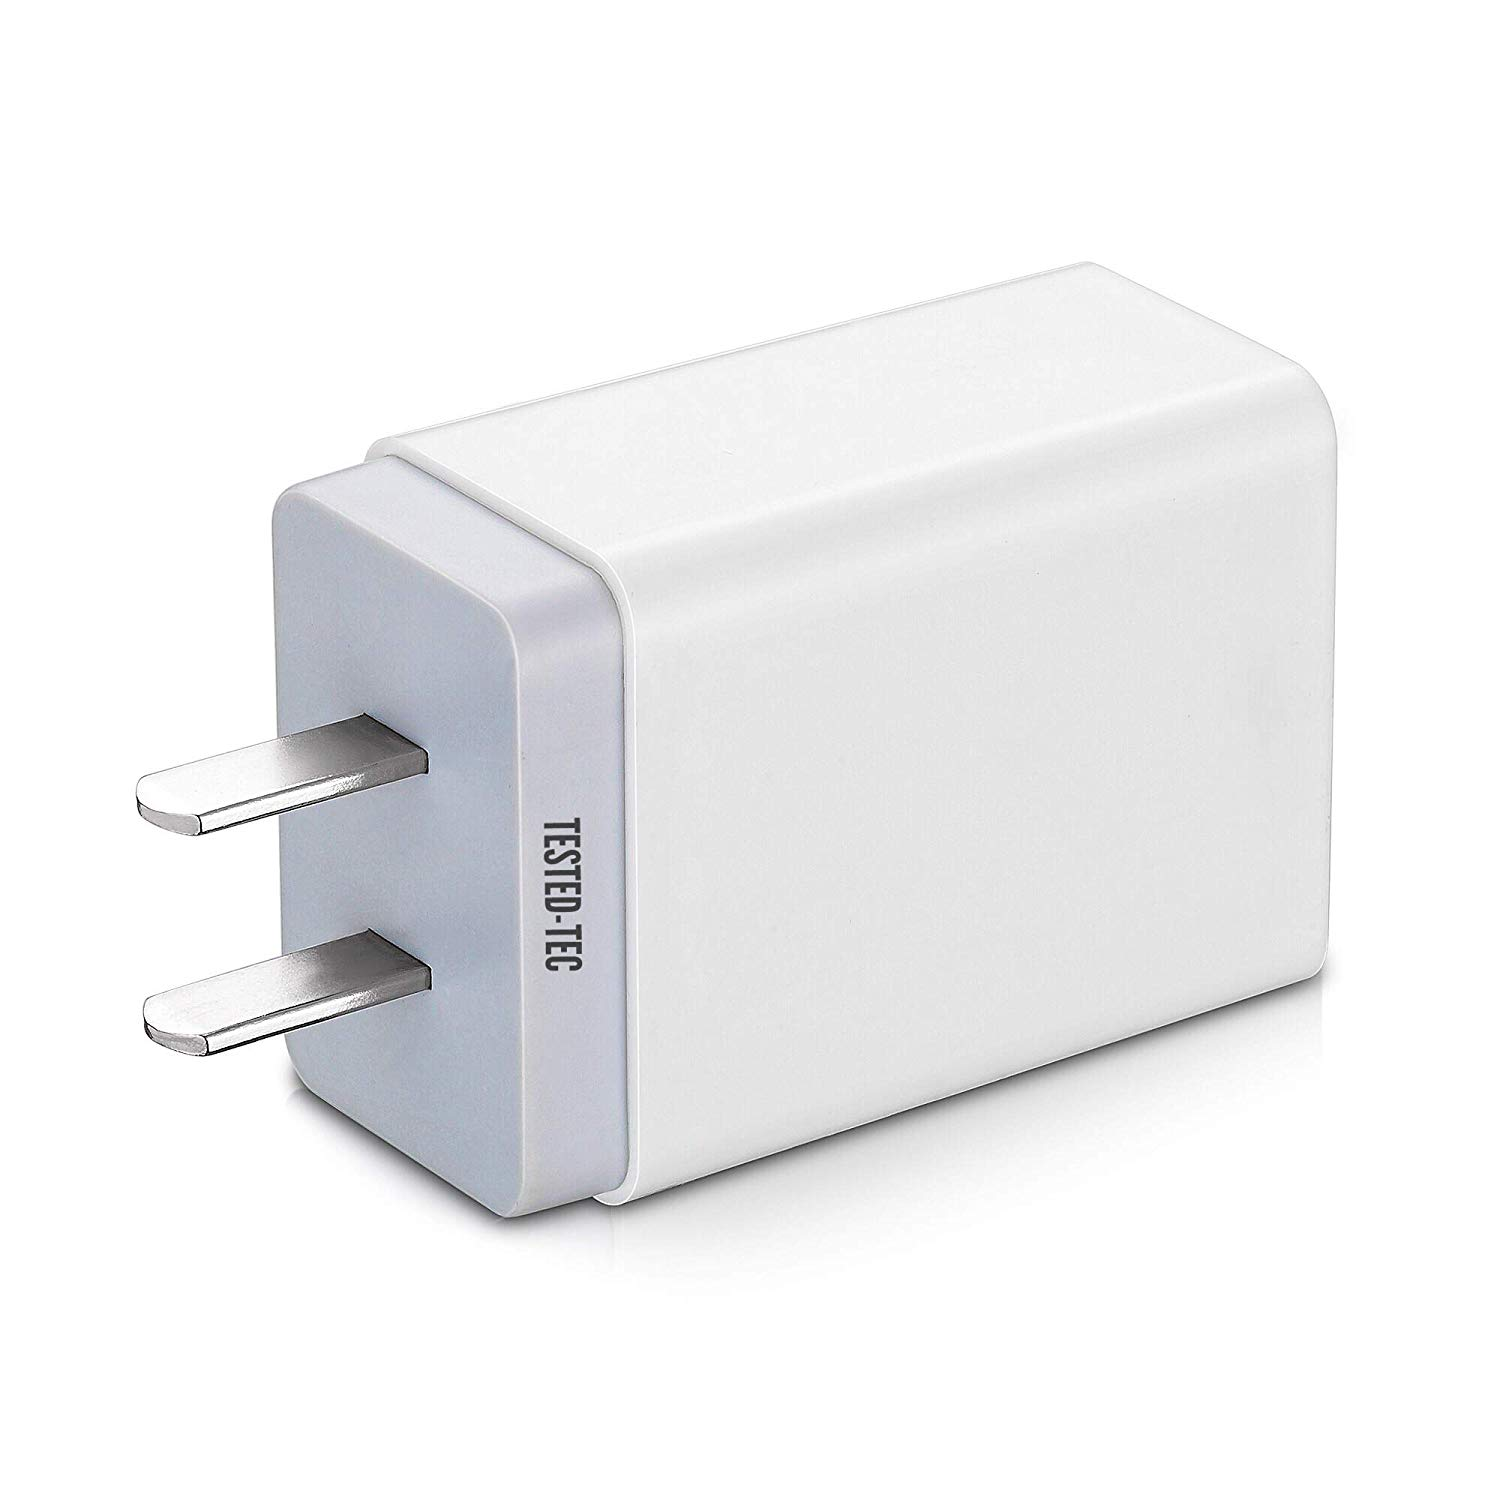 Continuously Charging Arlo Pro and Arlo Pro 2 3Pack, White No Need to Change The Batteries Arlo Charger with 25Ft//7.5m Weatherproof USB Cable